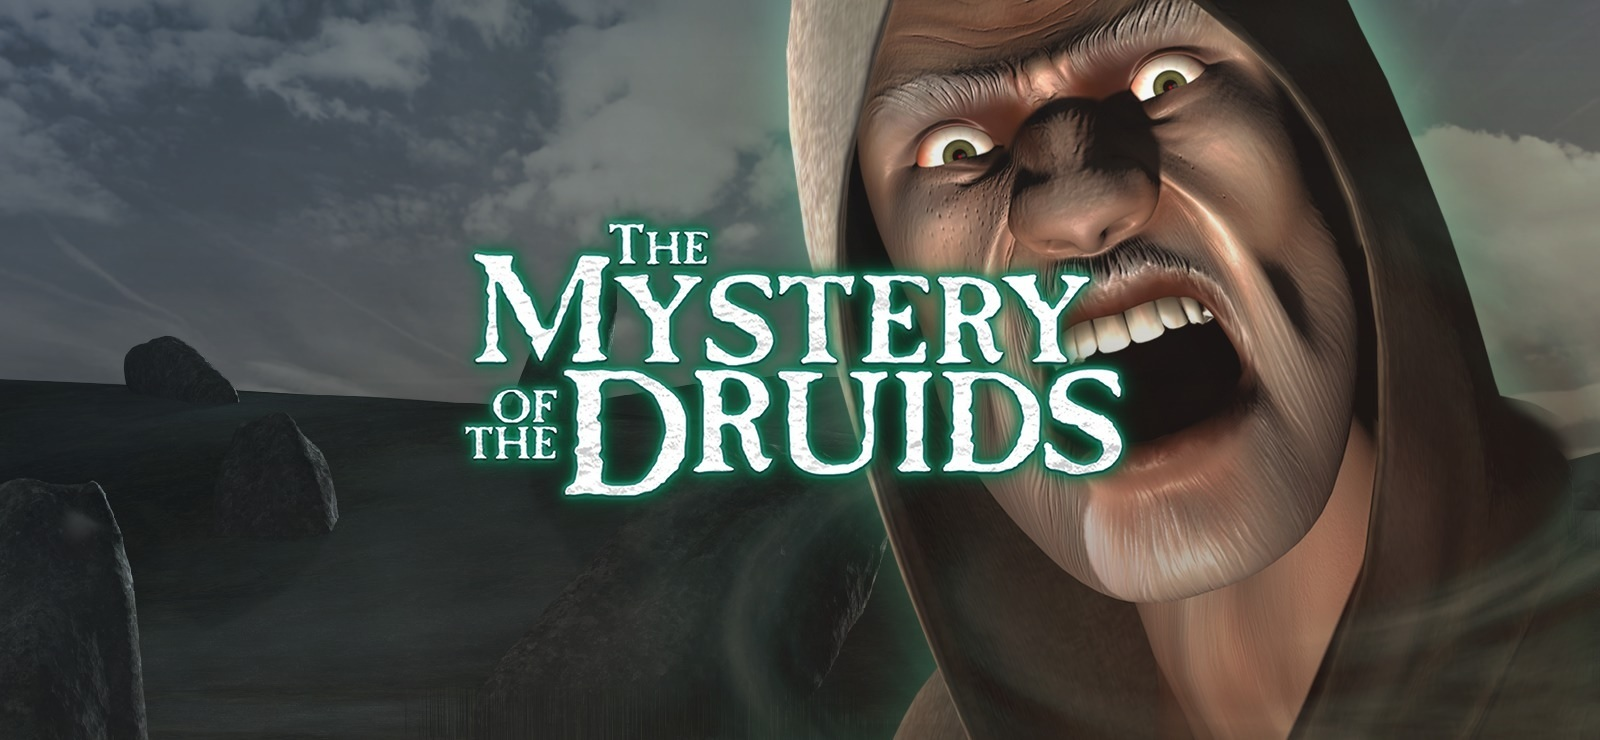 The_Mystery_of_the_Druids_1